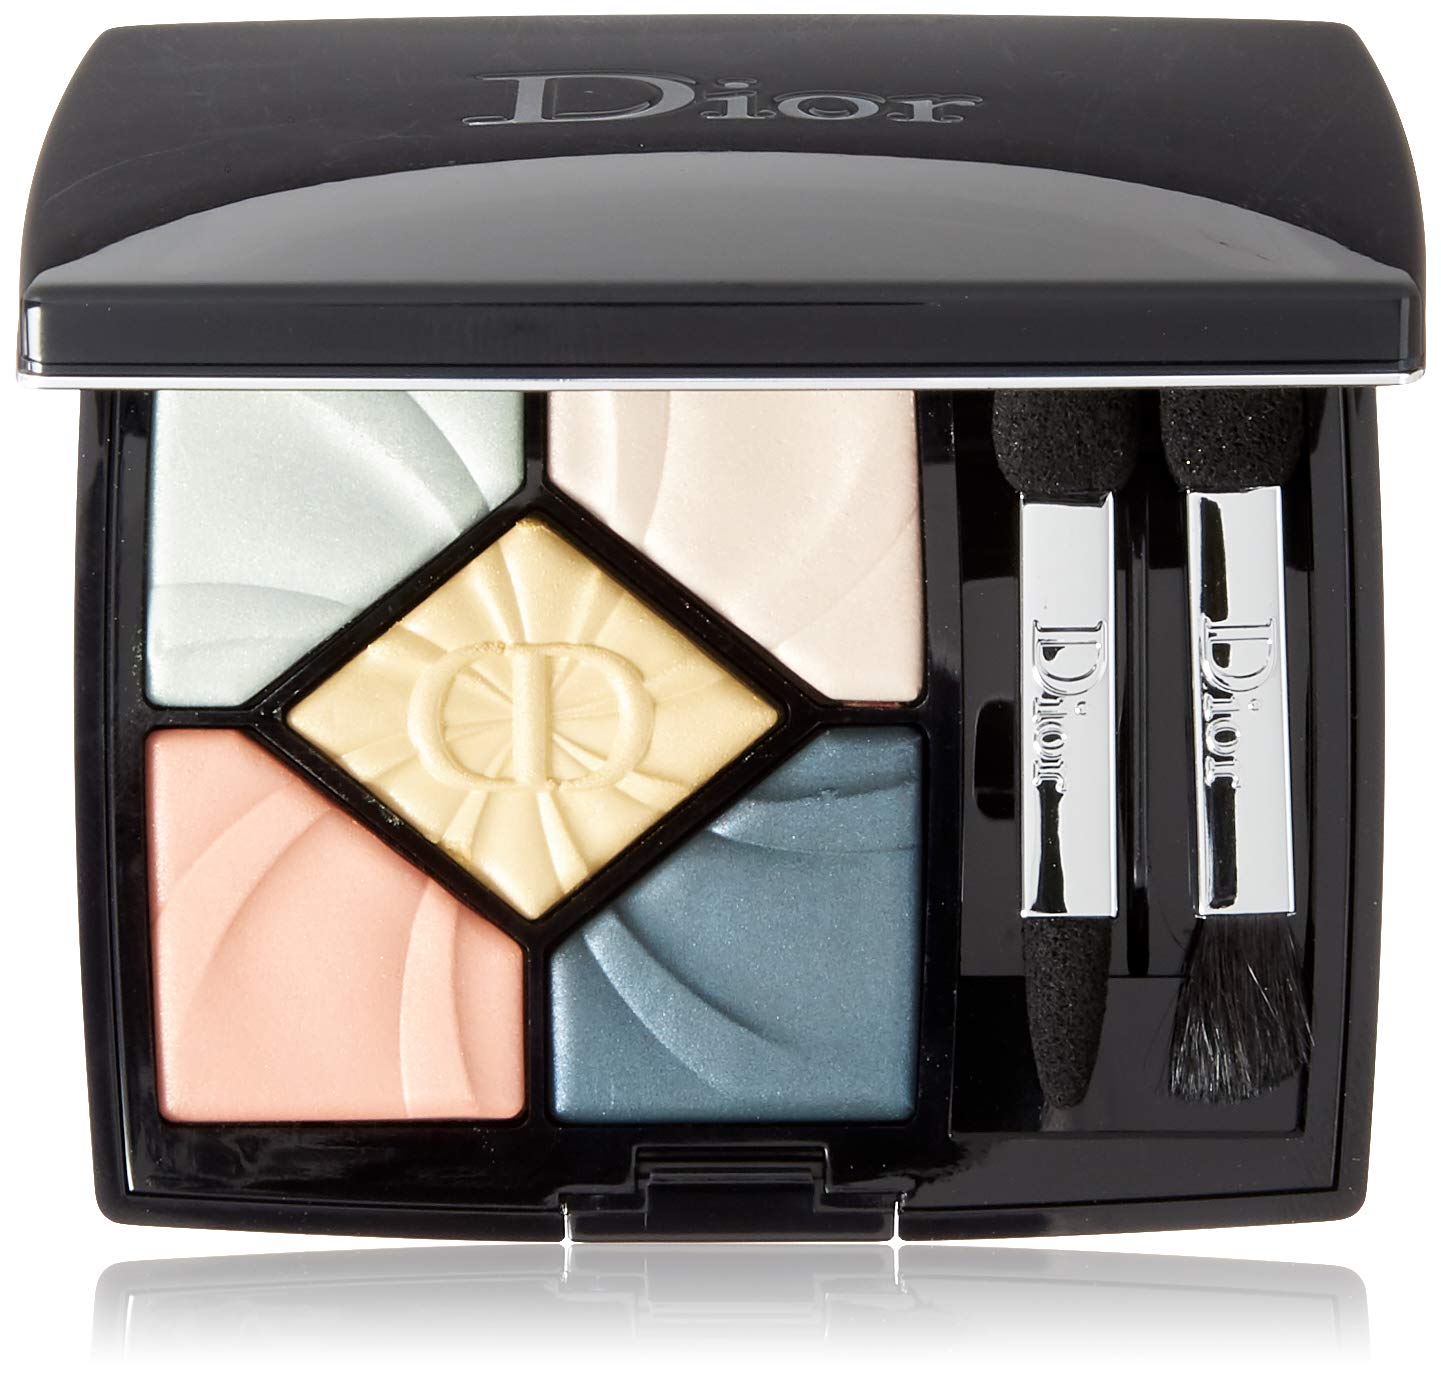 Christian Dior 5 Couleurs Lolli'Glow Eyeshadow Pallette, Mellow Shade 447, 0.10 Ounce by Dior